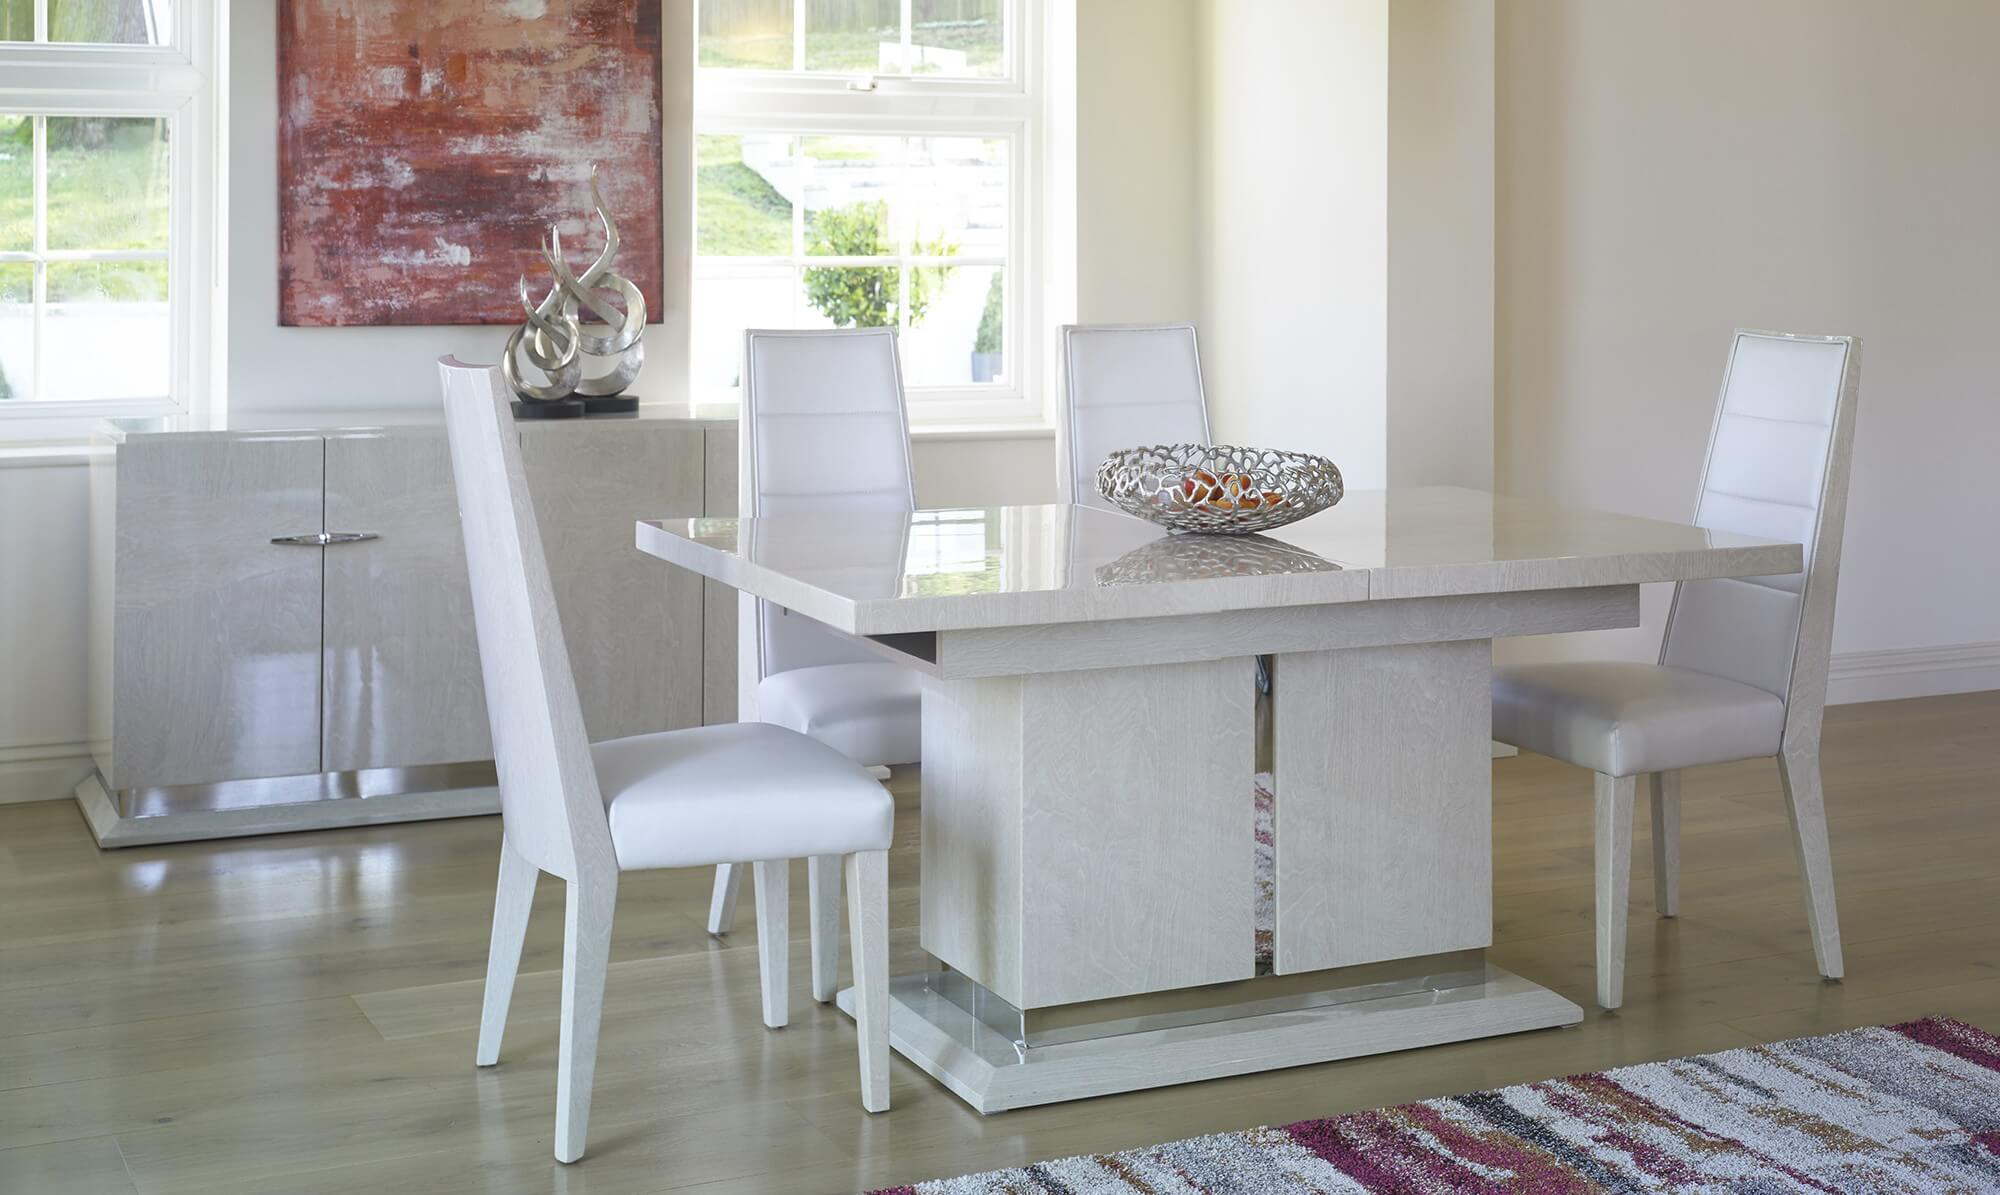 White dining table - Fishpools